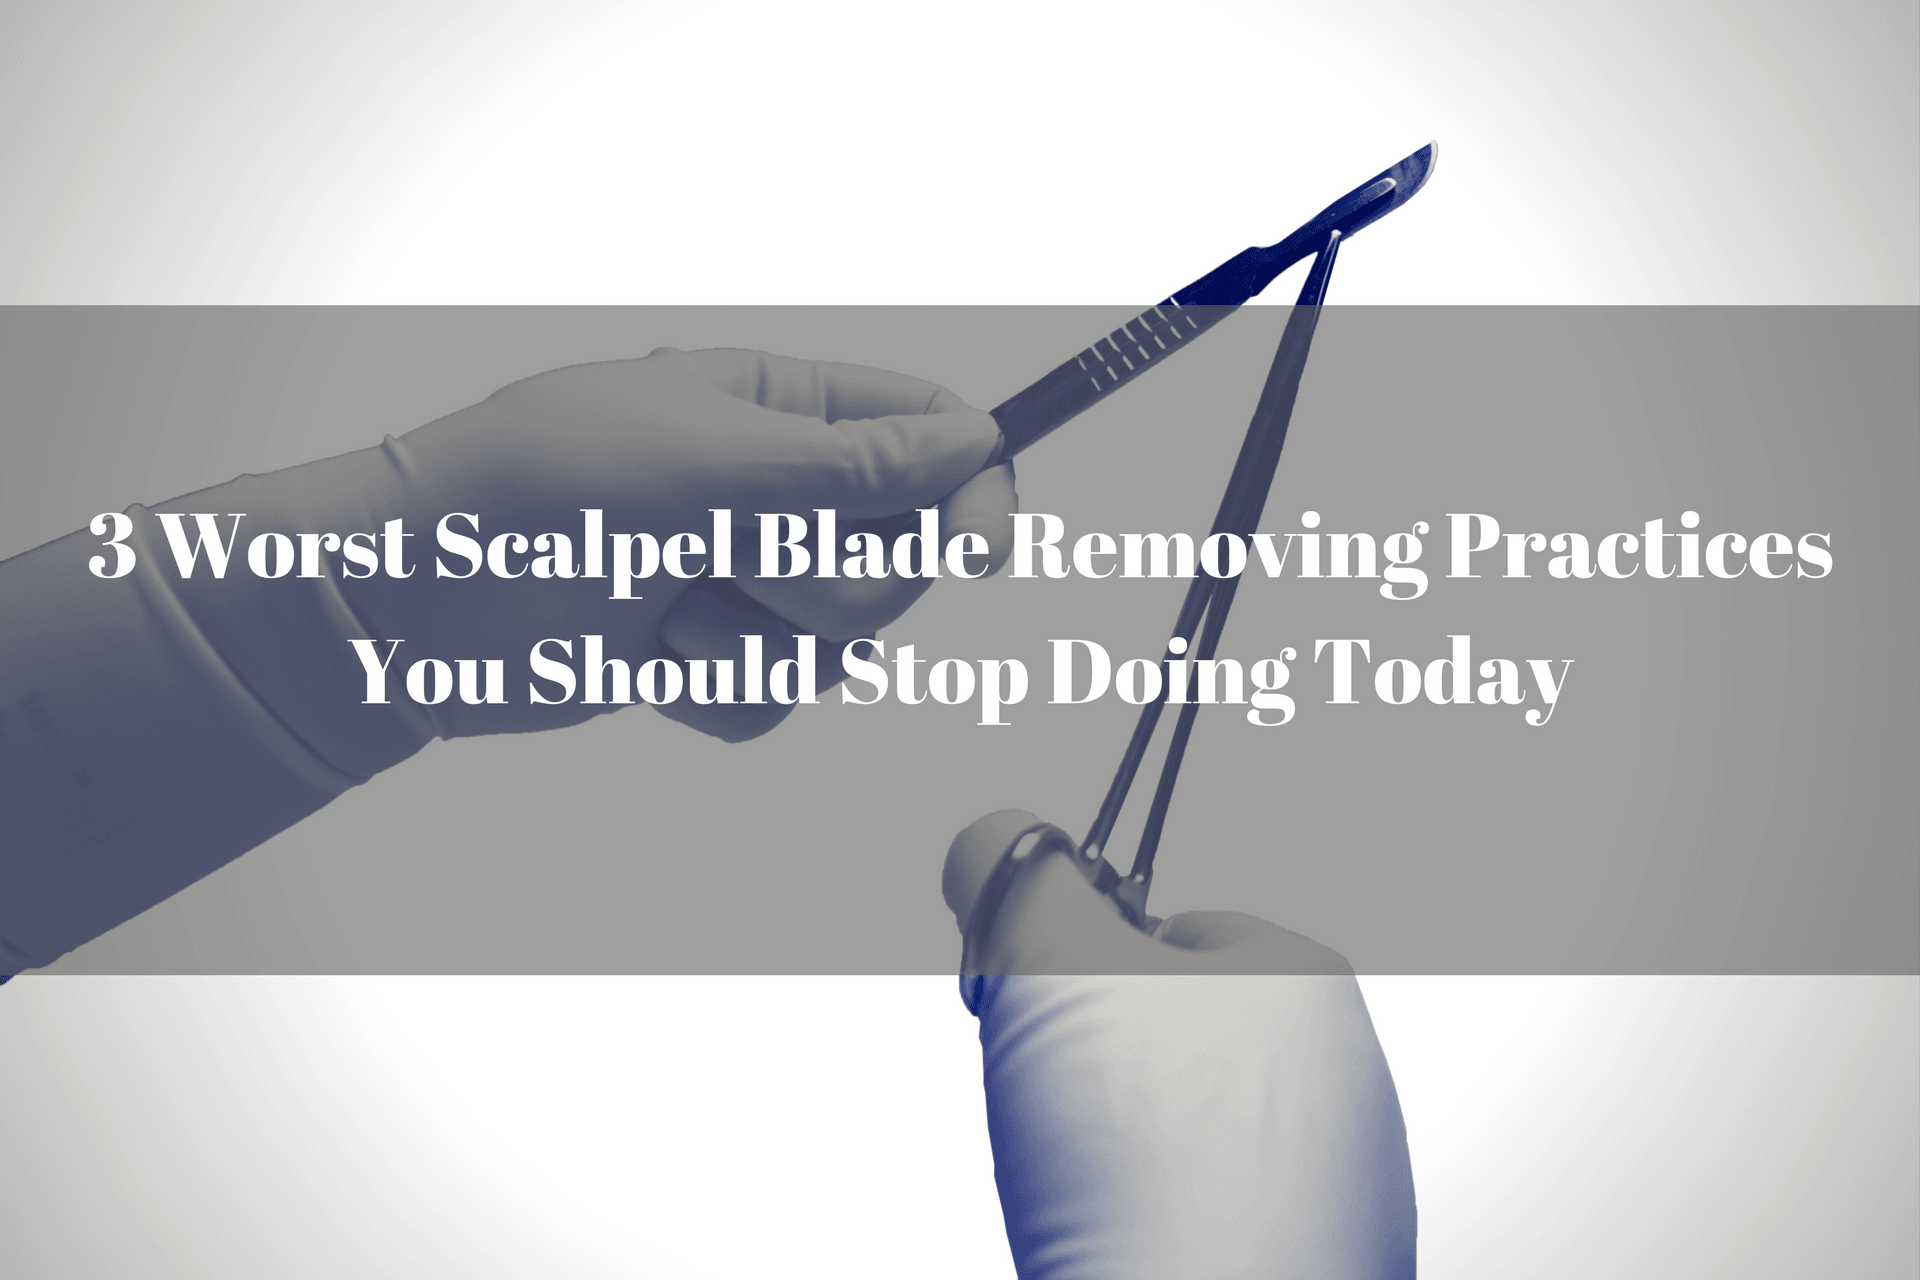 worst-scalpel-blade-removing-practices